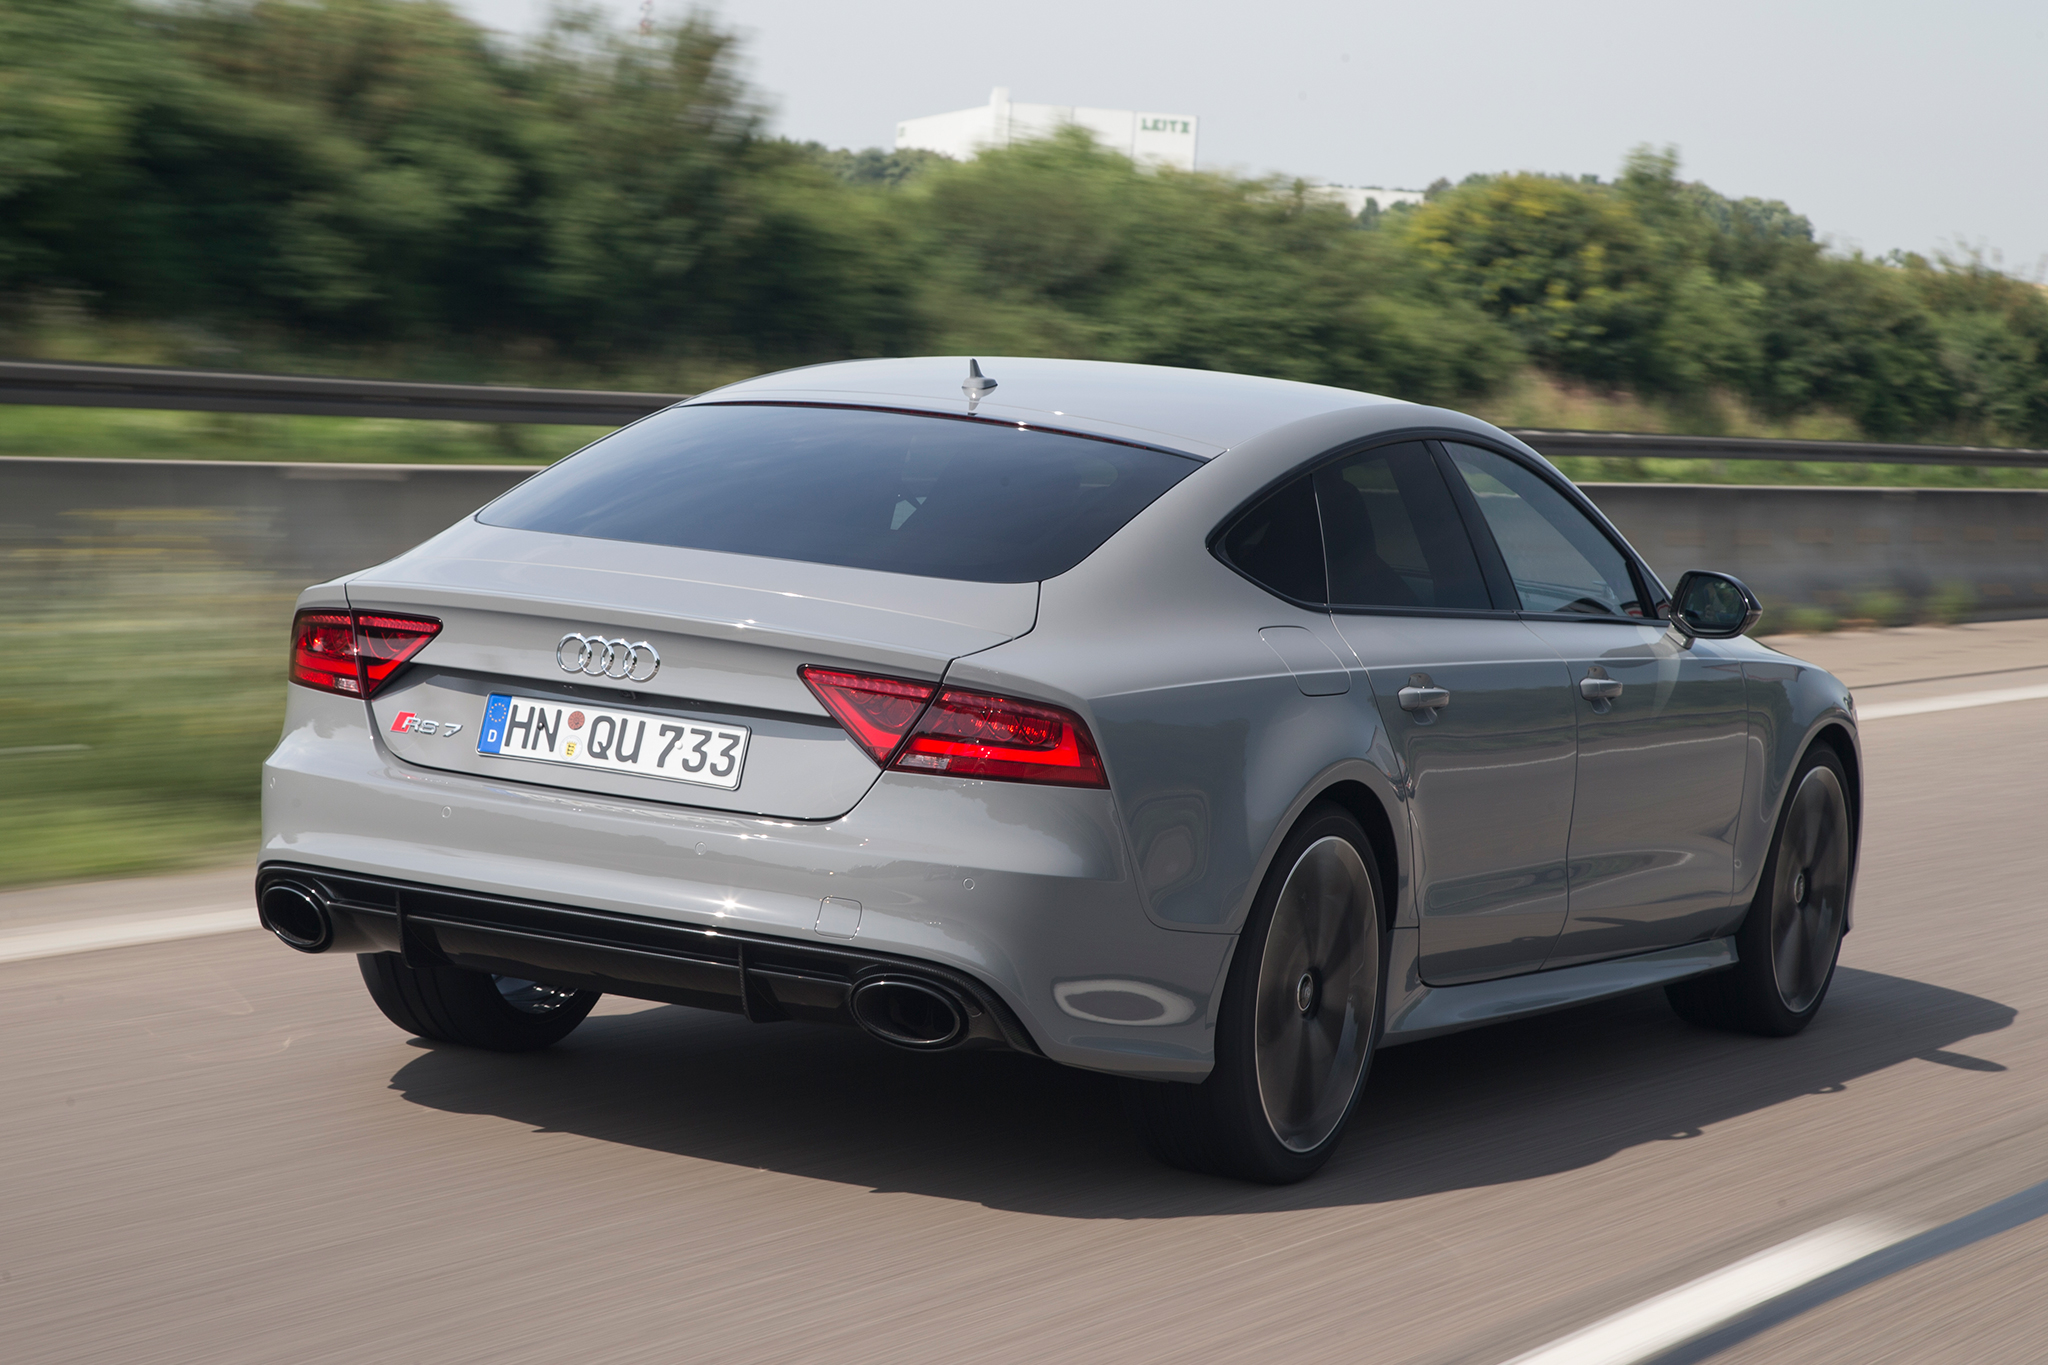 Driverless Audi RS 7 Can Lap Hockenheimring Track as Fast as Humans